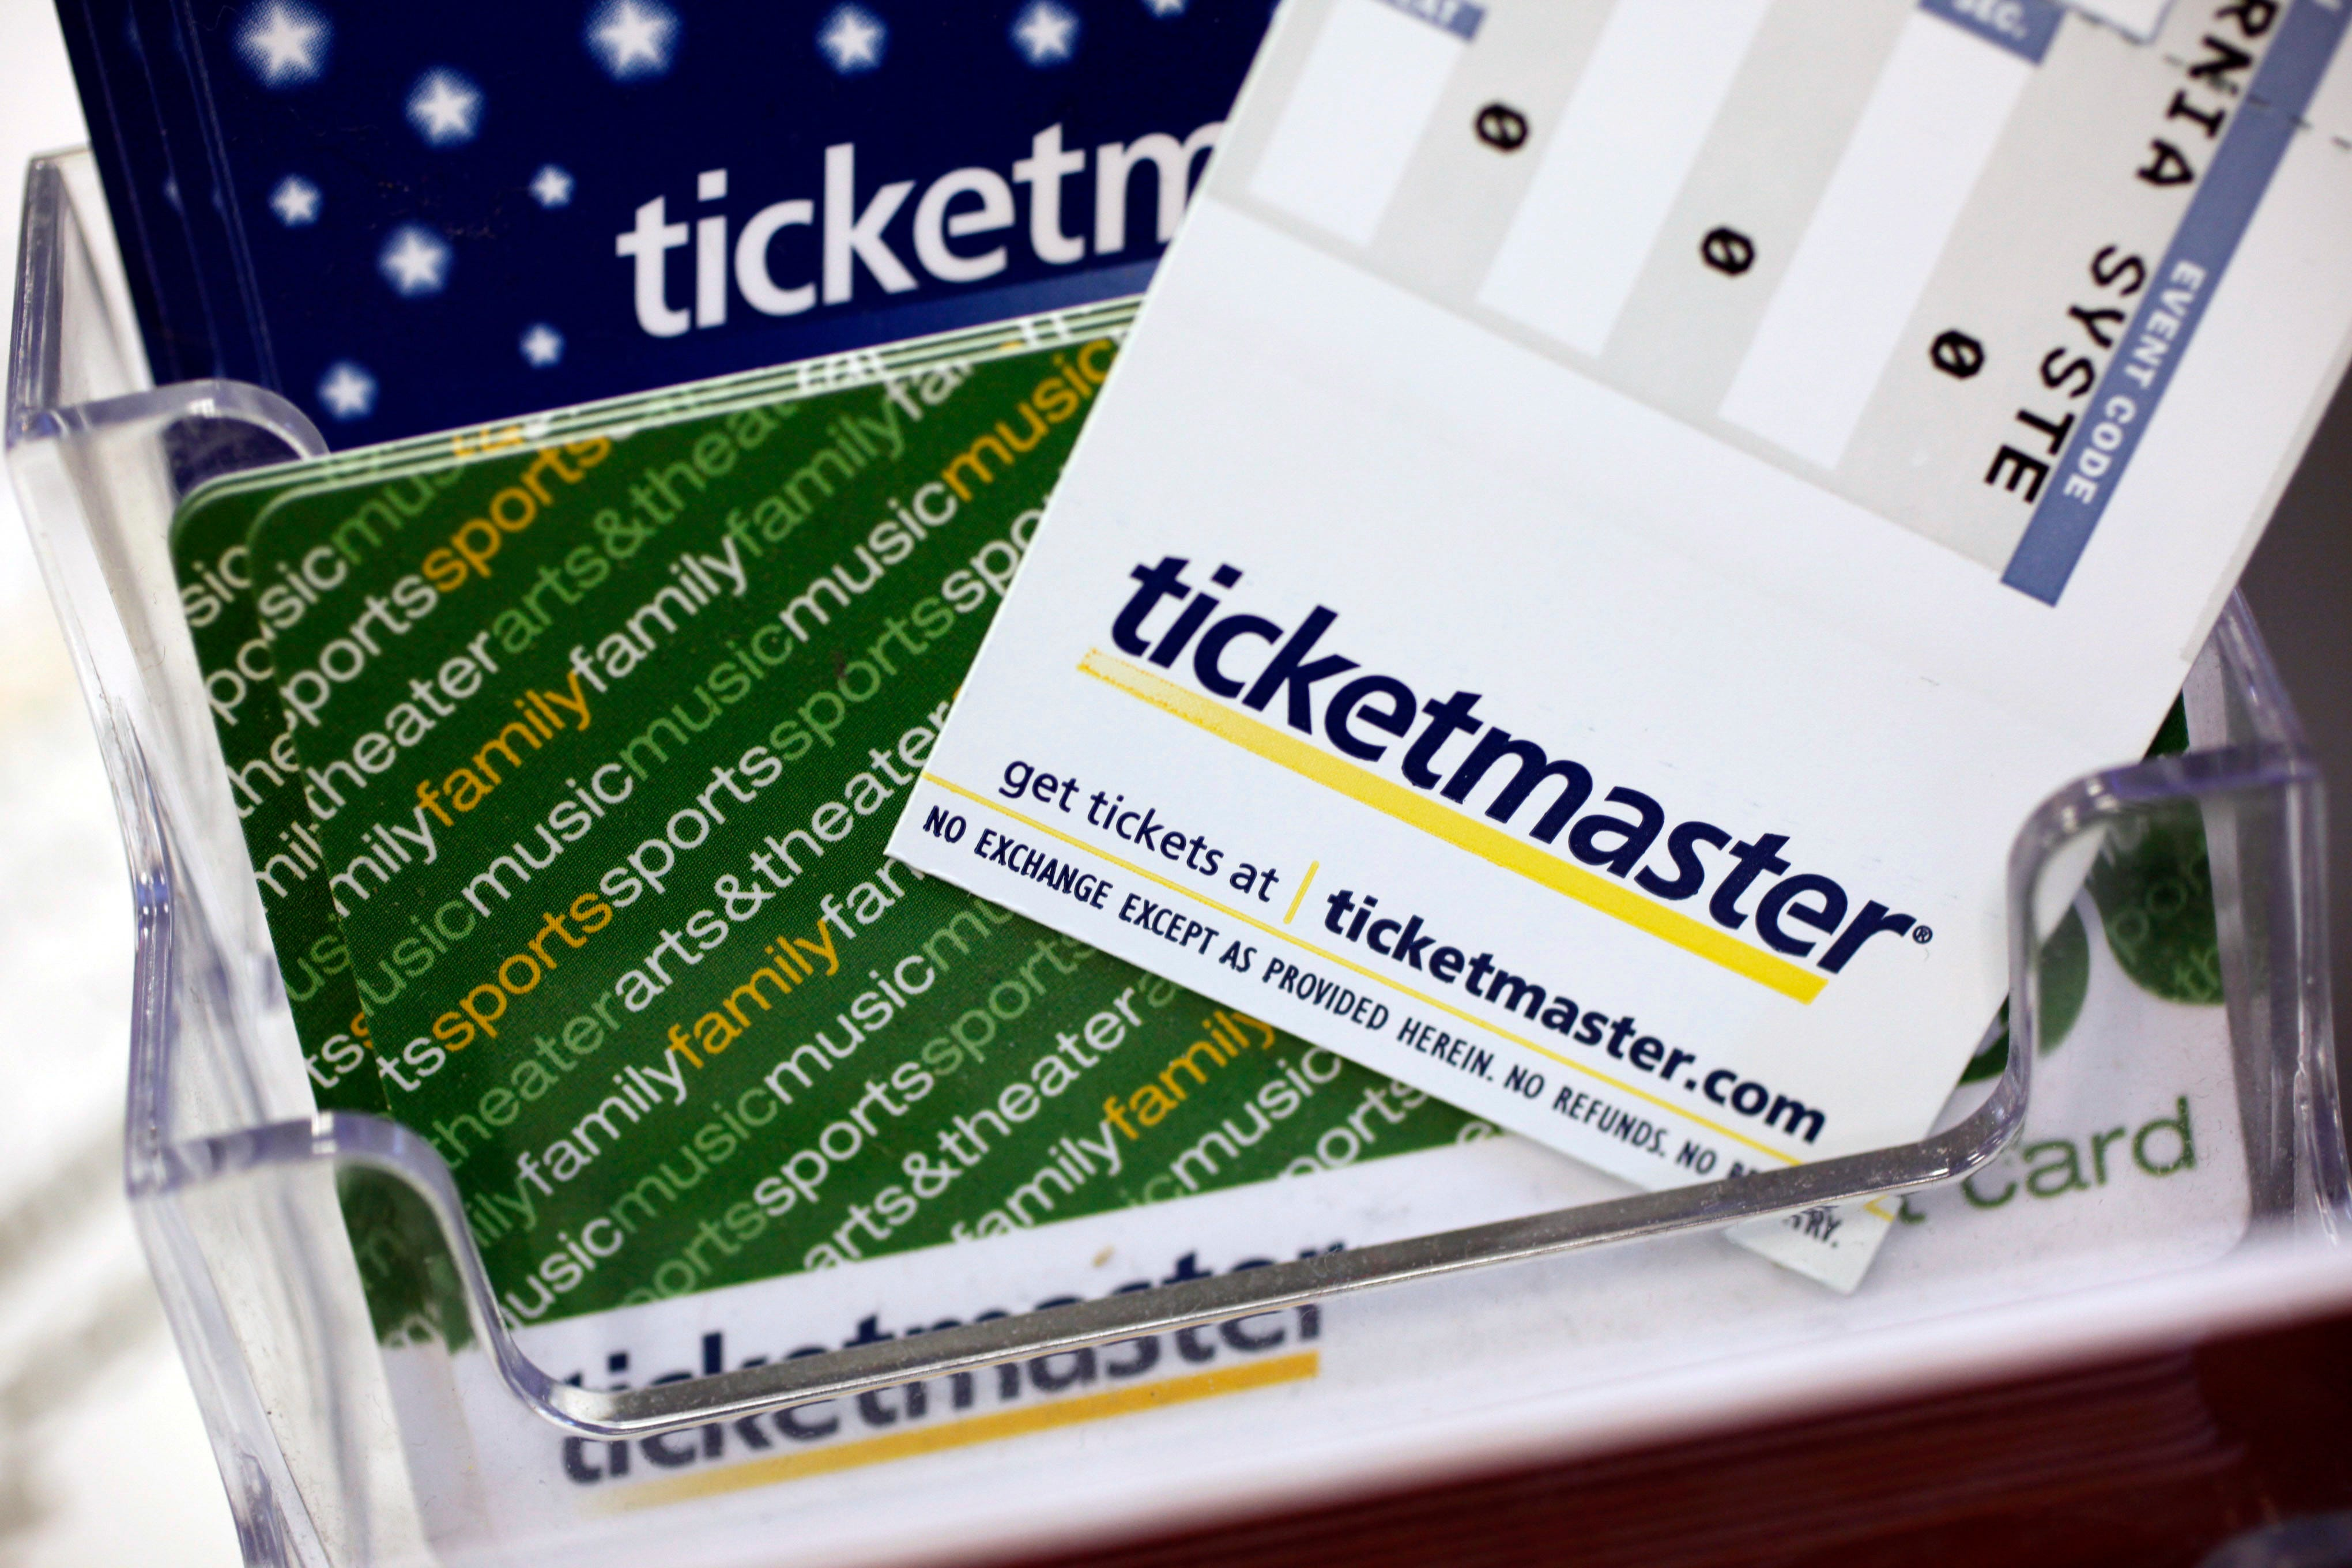 Ticketmaster denies mass ticket-scalping reports as 'categorically untrue'